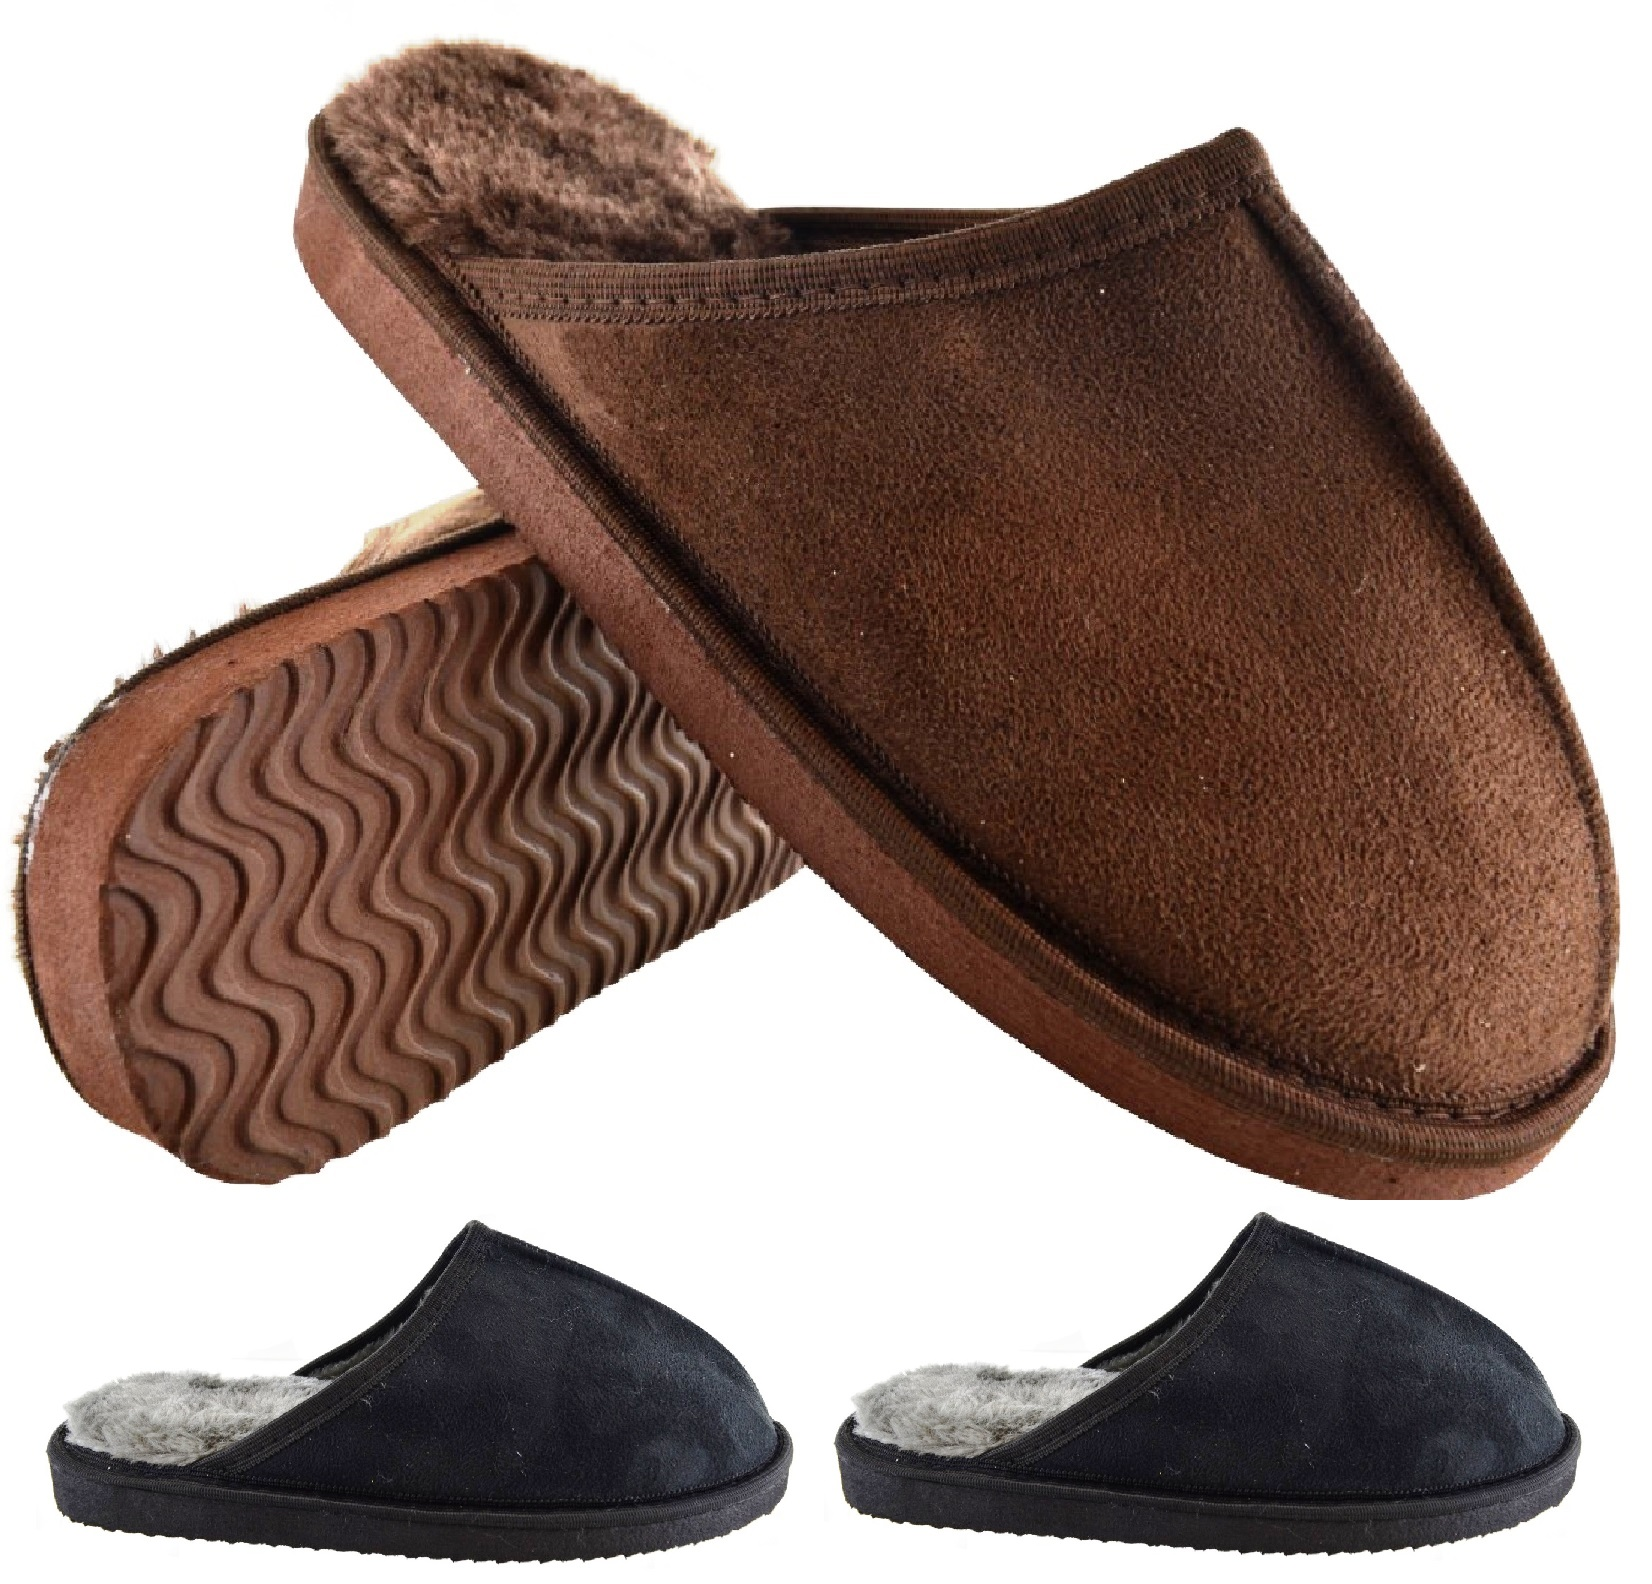 MENS NEW SLIP ON WARM COOL COSY LUXURY INDOOR SLIP ON SHOES SLIPPERS MULES SIZE